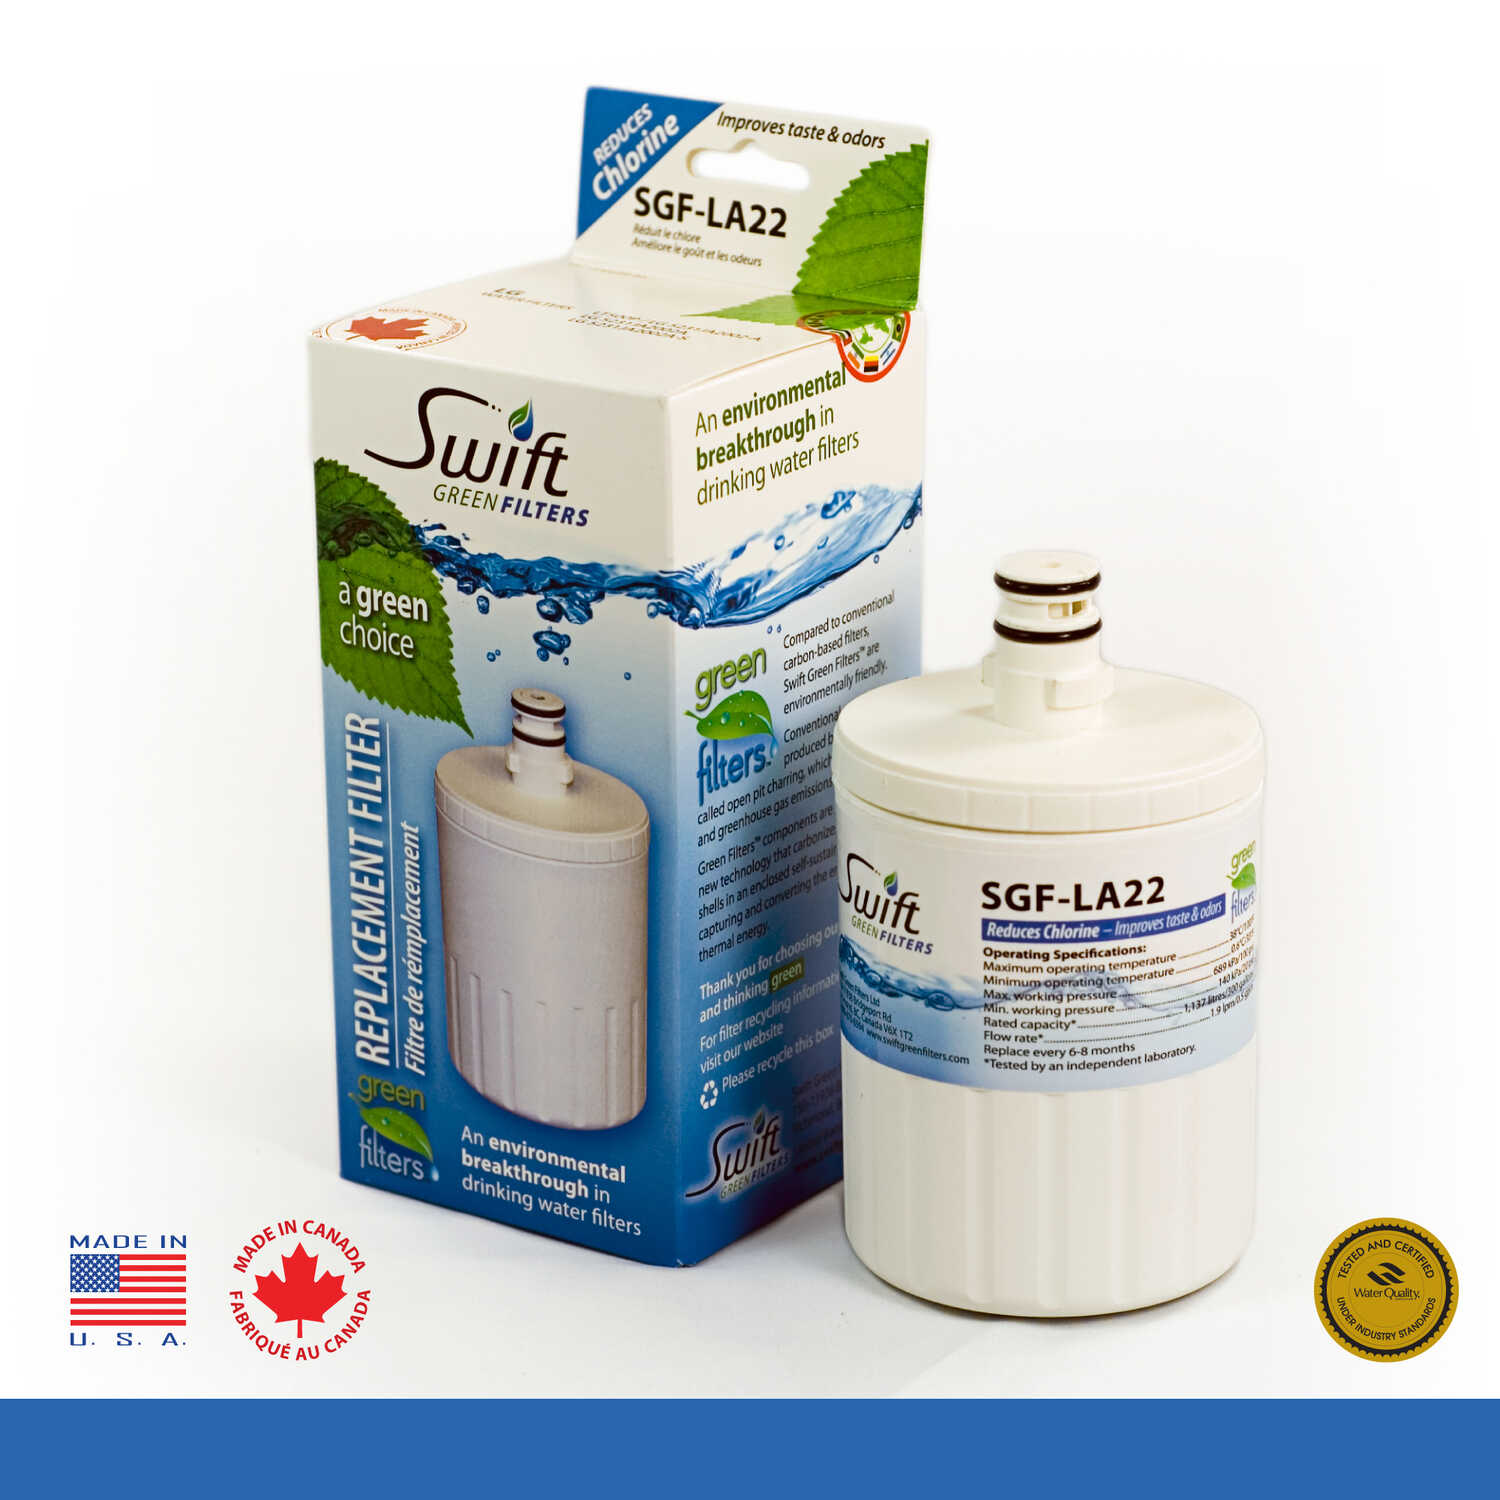 Swift  Green Filters  Replacement Water Filter  For Refrigerator 2500 gal.